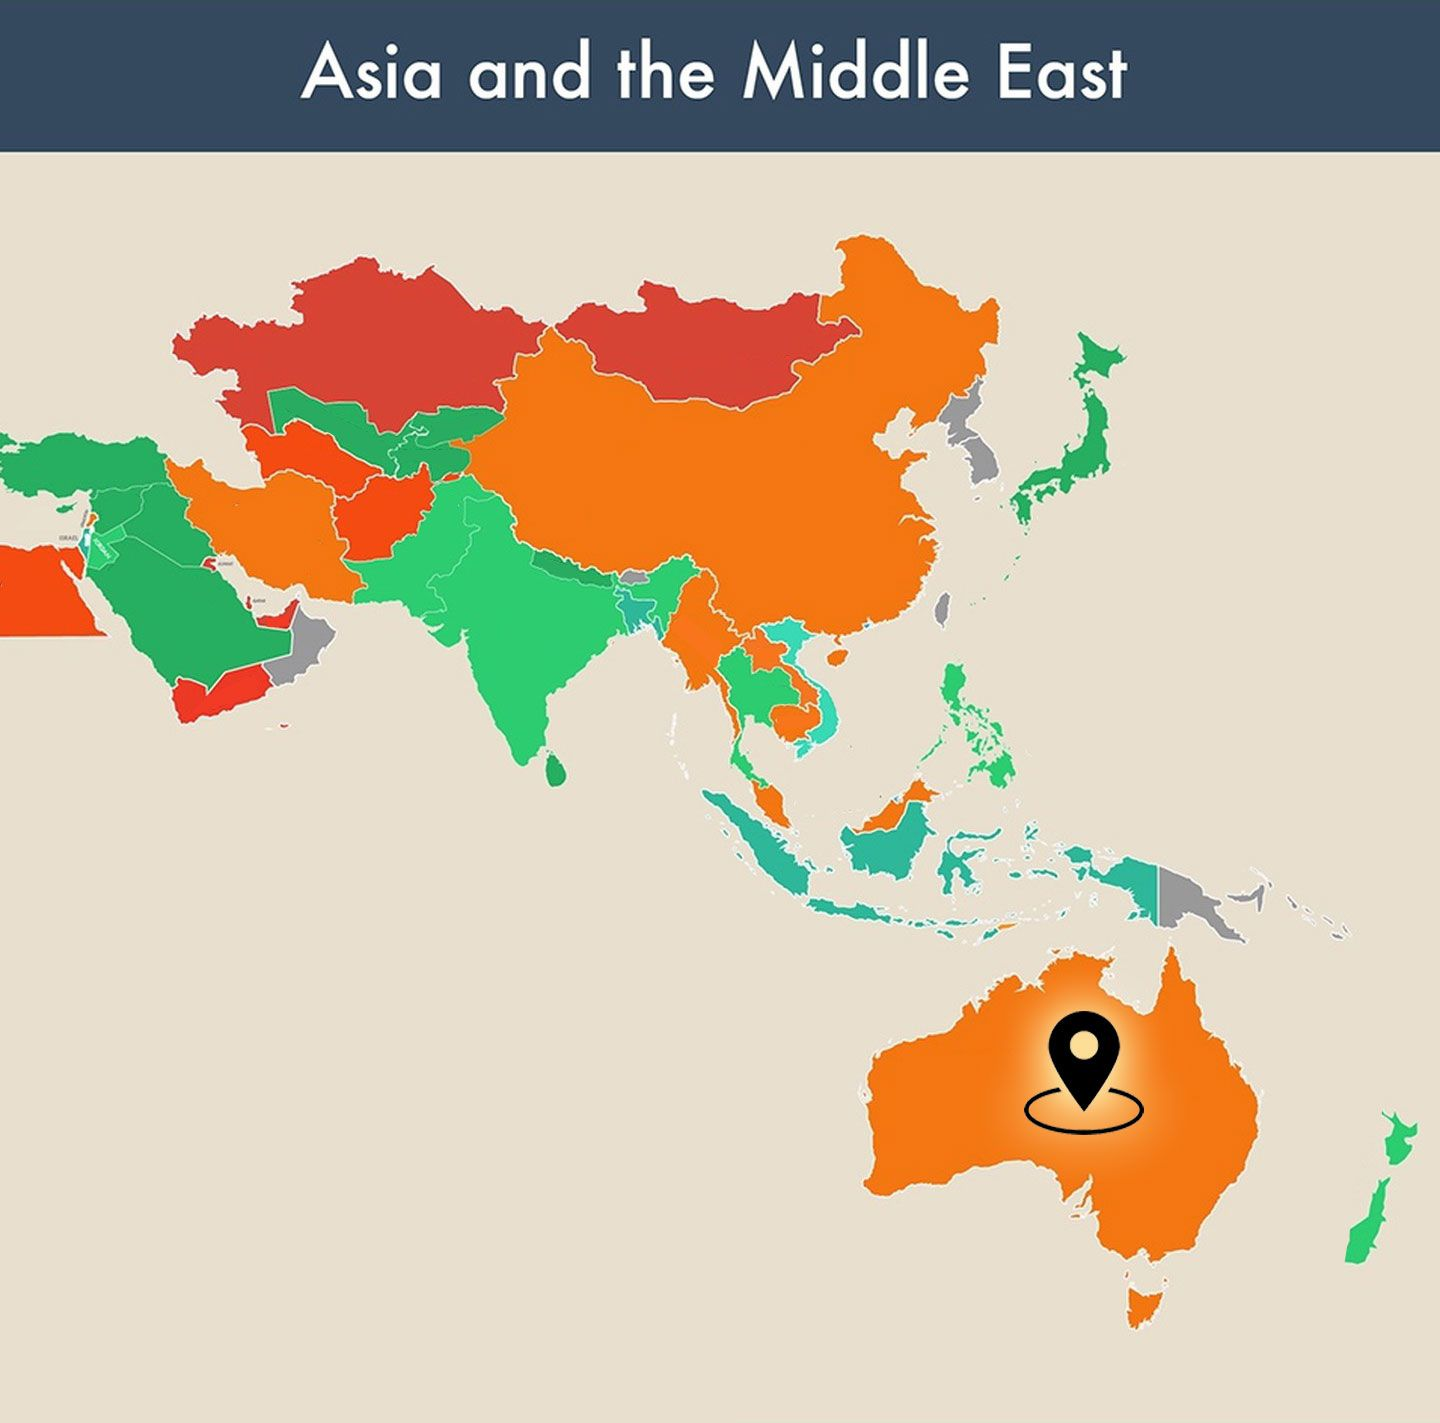 countries of the world empty map - australia image